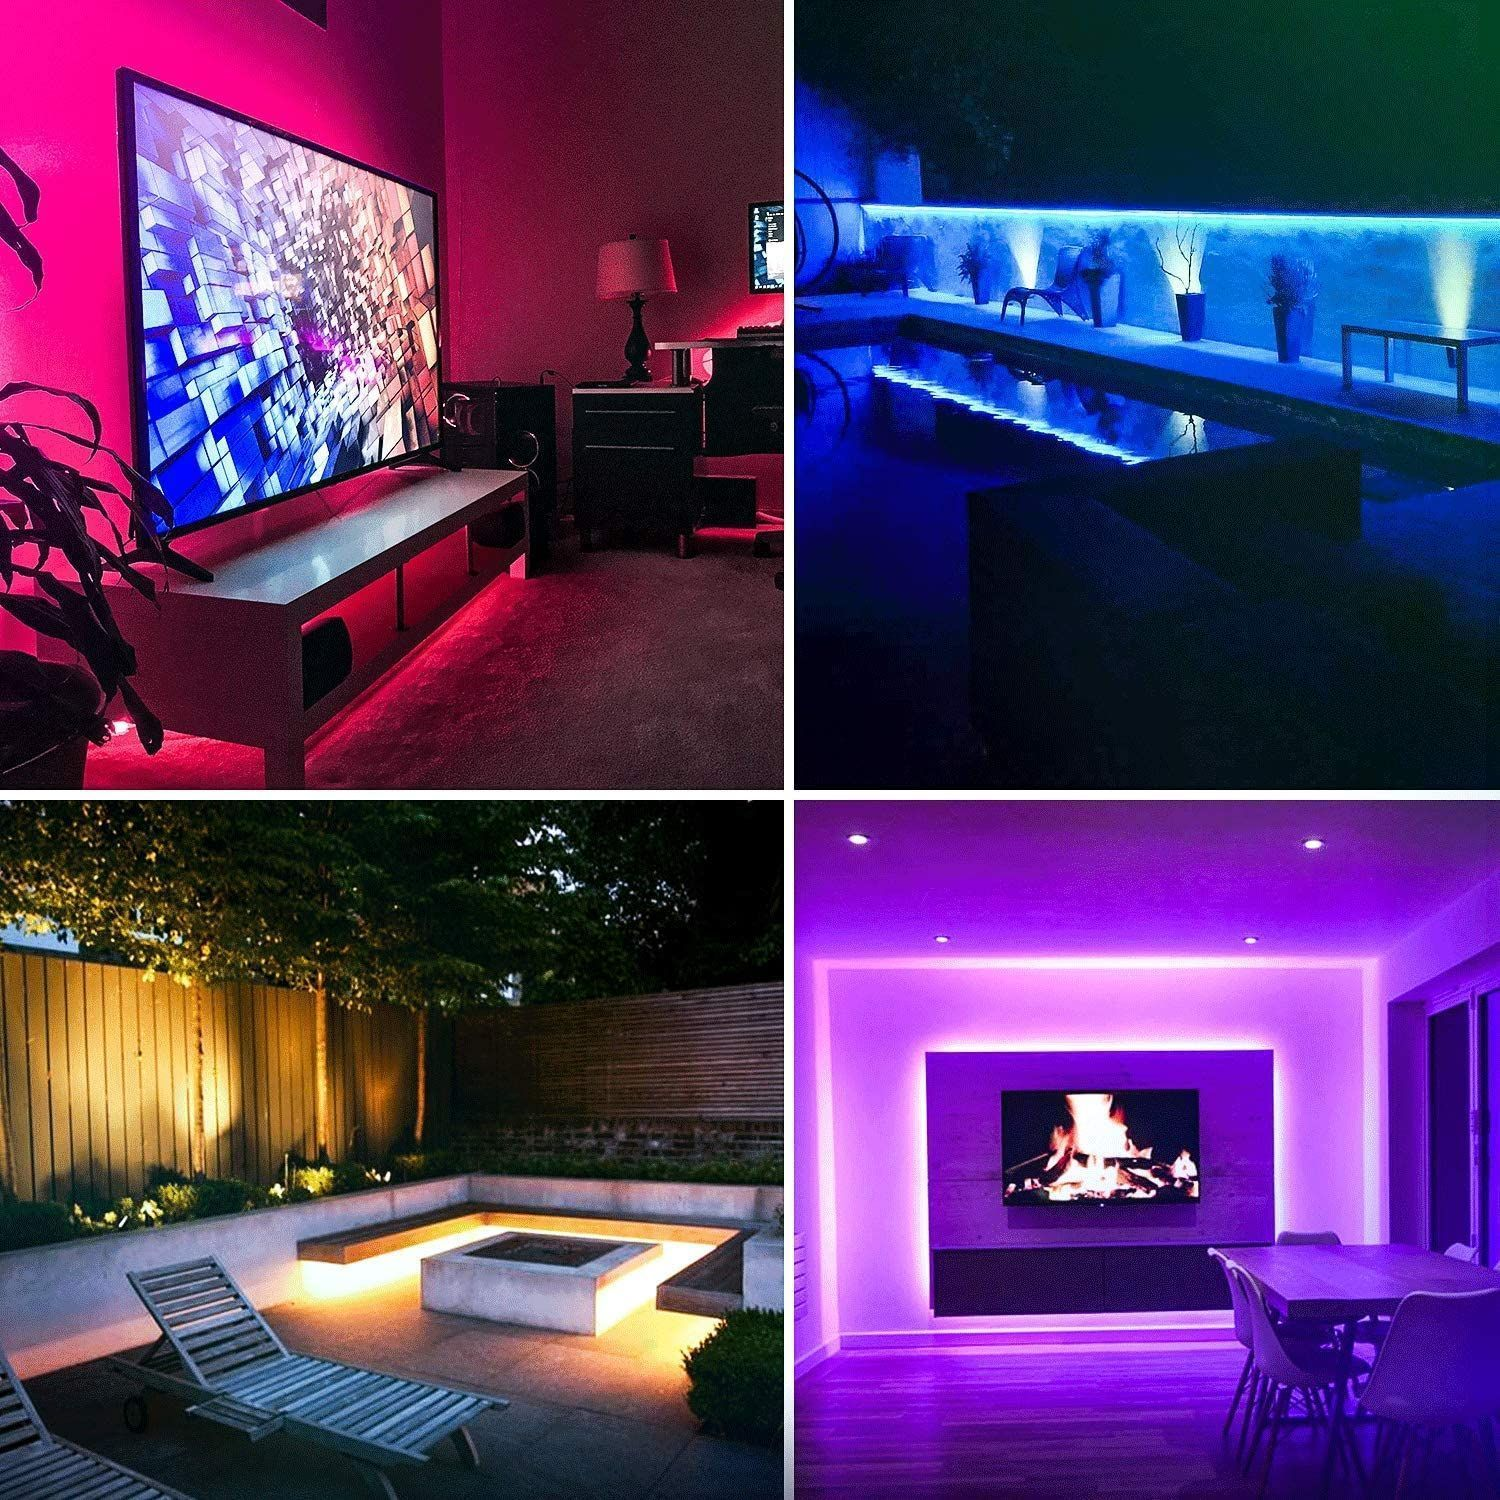 Myplus Led Strip Light Ip65 Upgrade Durable Rope Lights With Remote Control And Color Changing 16 4ft Waterp In 2020 Waterproof Led Lights Rope Lights Strip Lighting